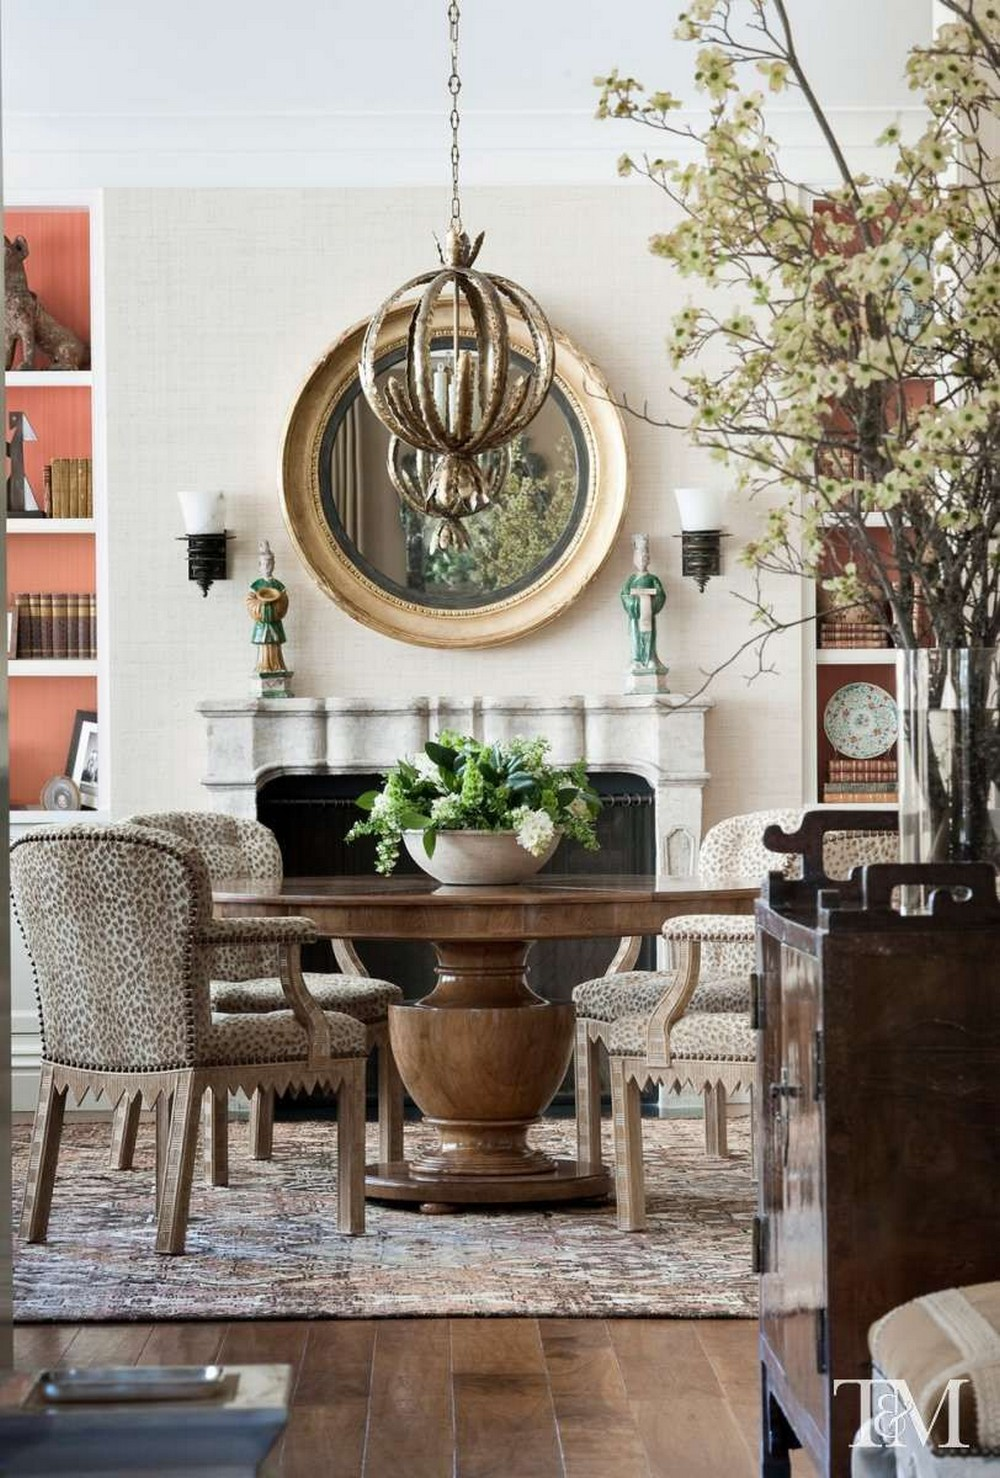 Tucker & Marks: Classic Designs, Timeless Dining Rooms tucker & marks Tucker & Marks: Classic Designs, Timeless Dining Rooms 1 tuckerr